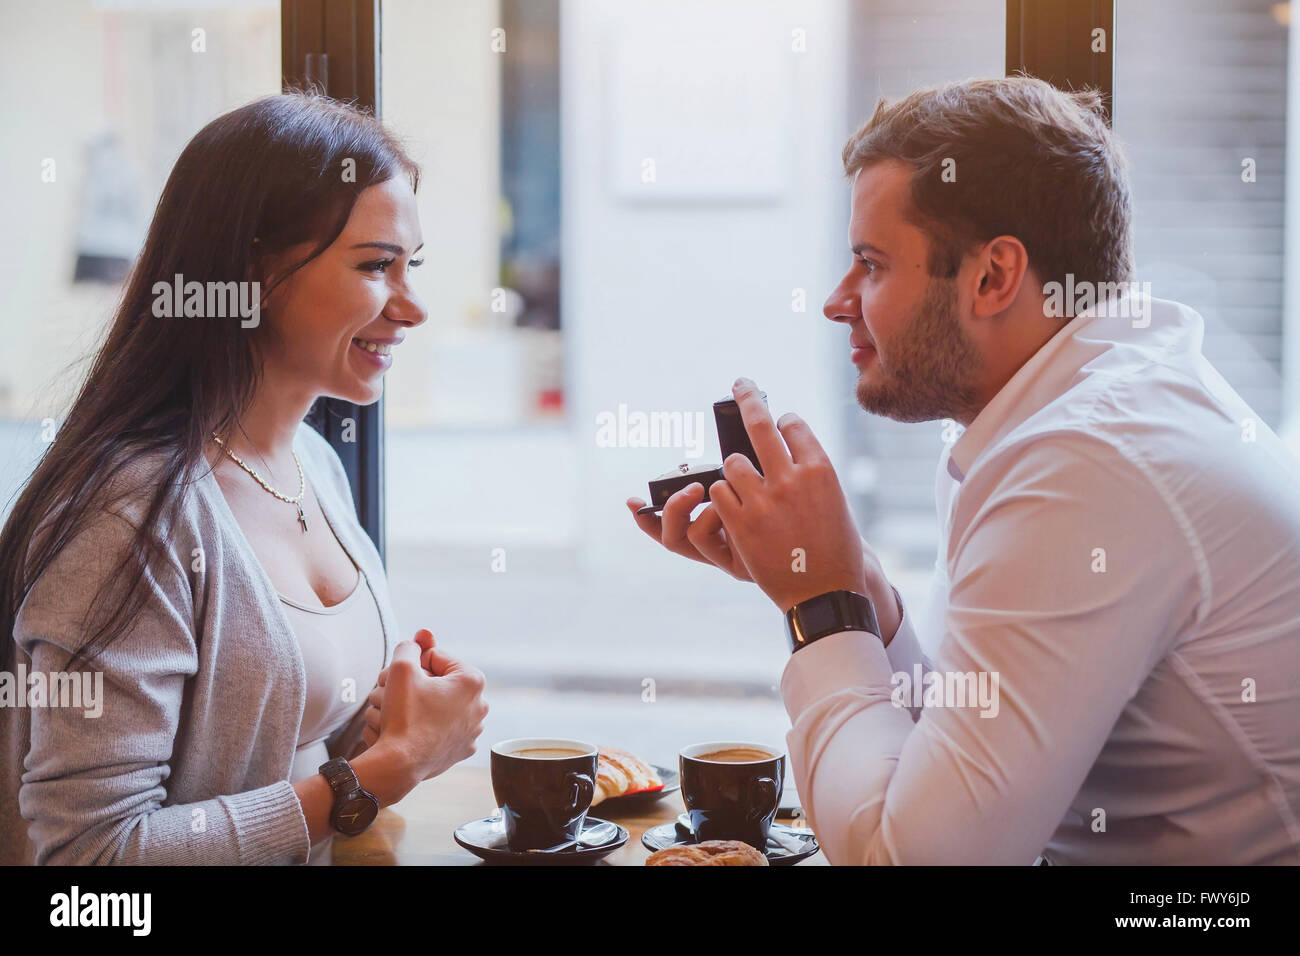 proposal, engagement concept, happy couple in restaurant, man offers the ring, marry me - Stock Image